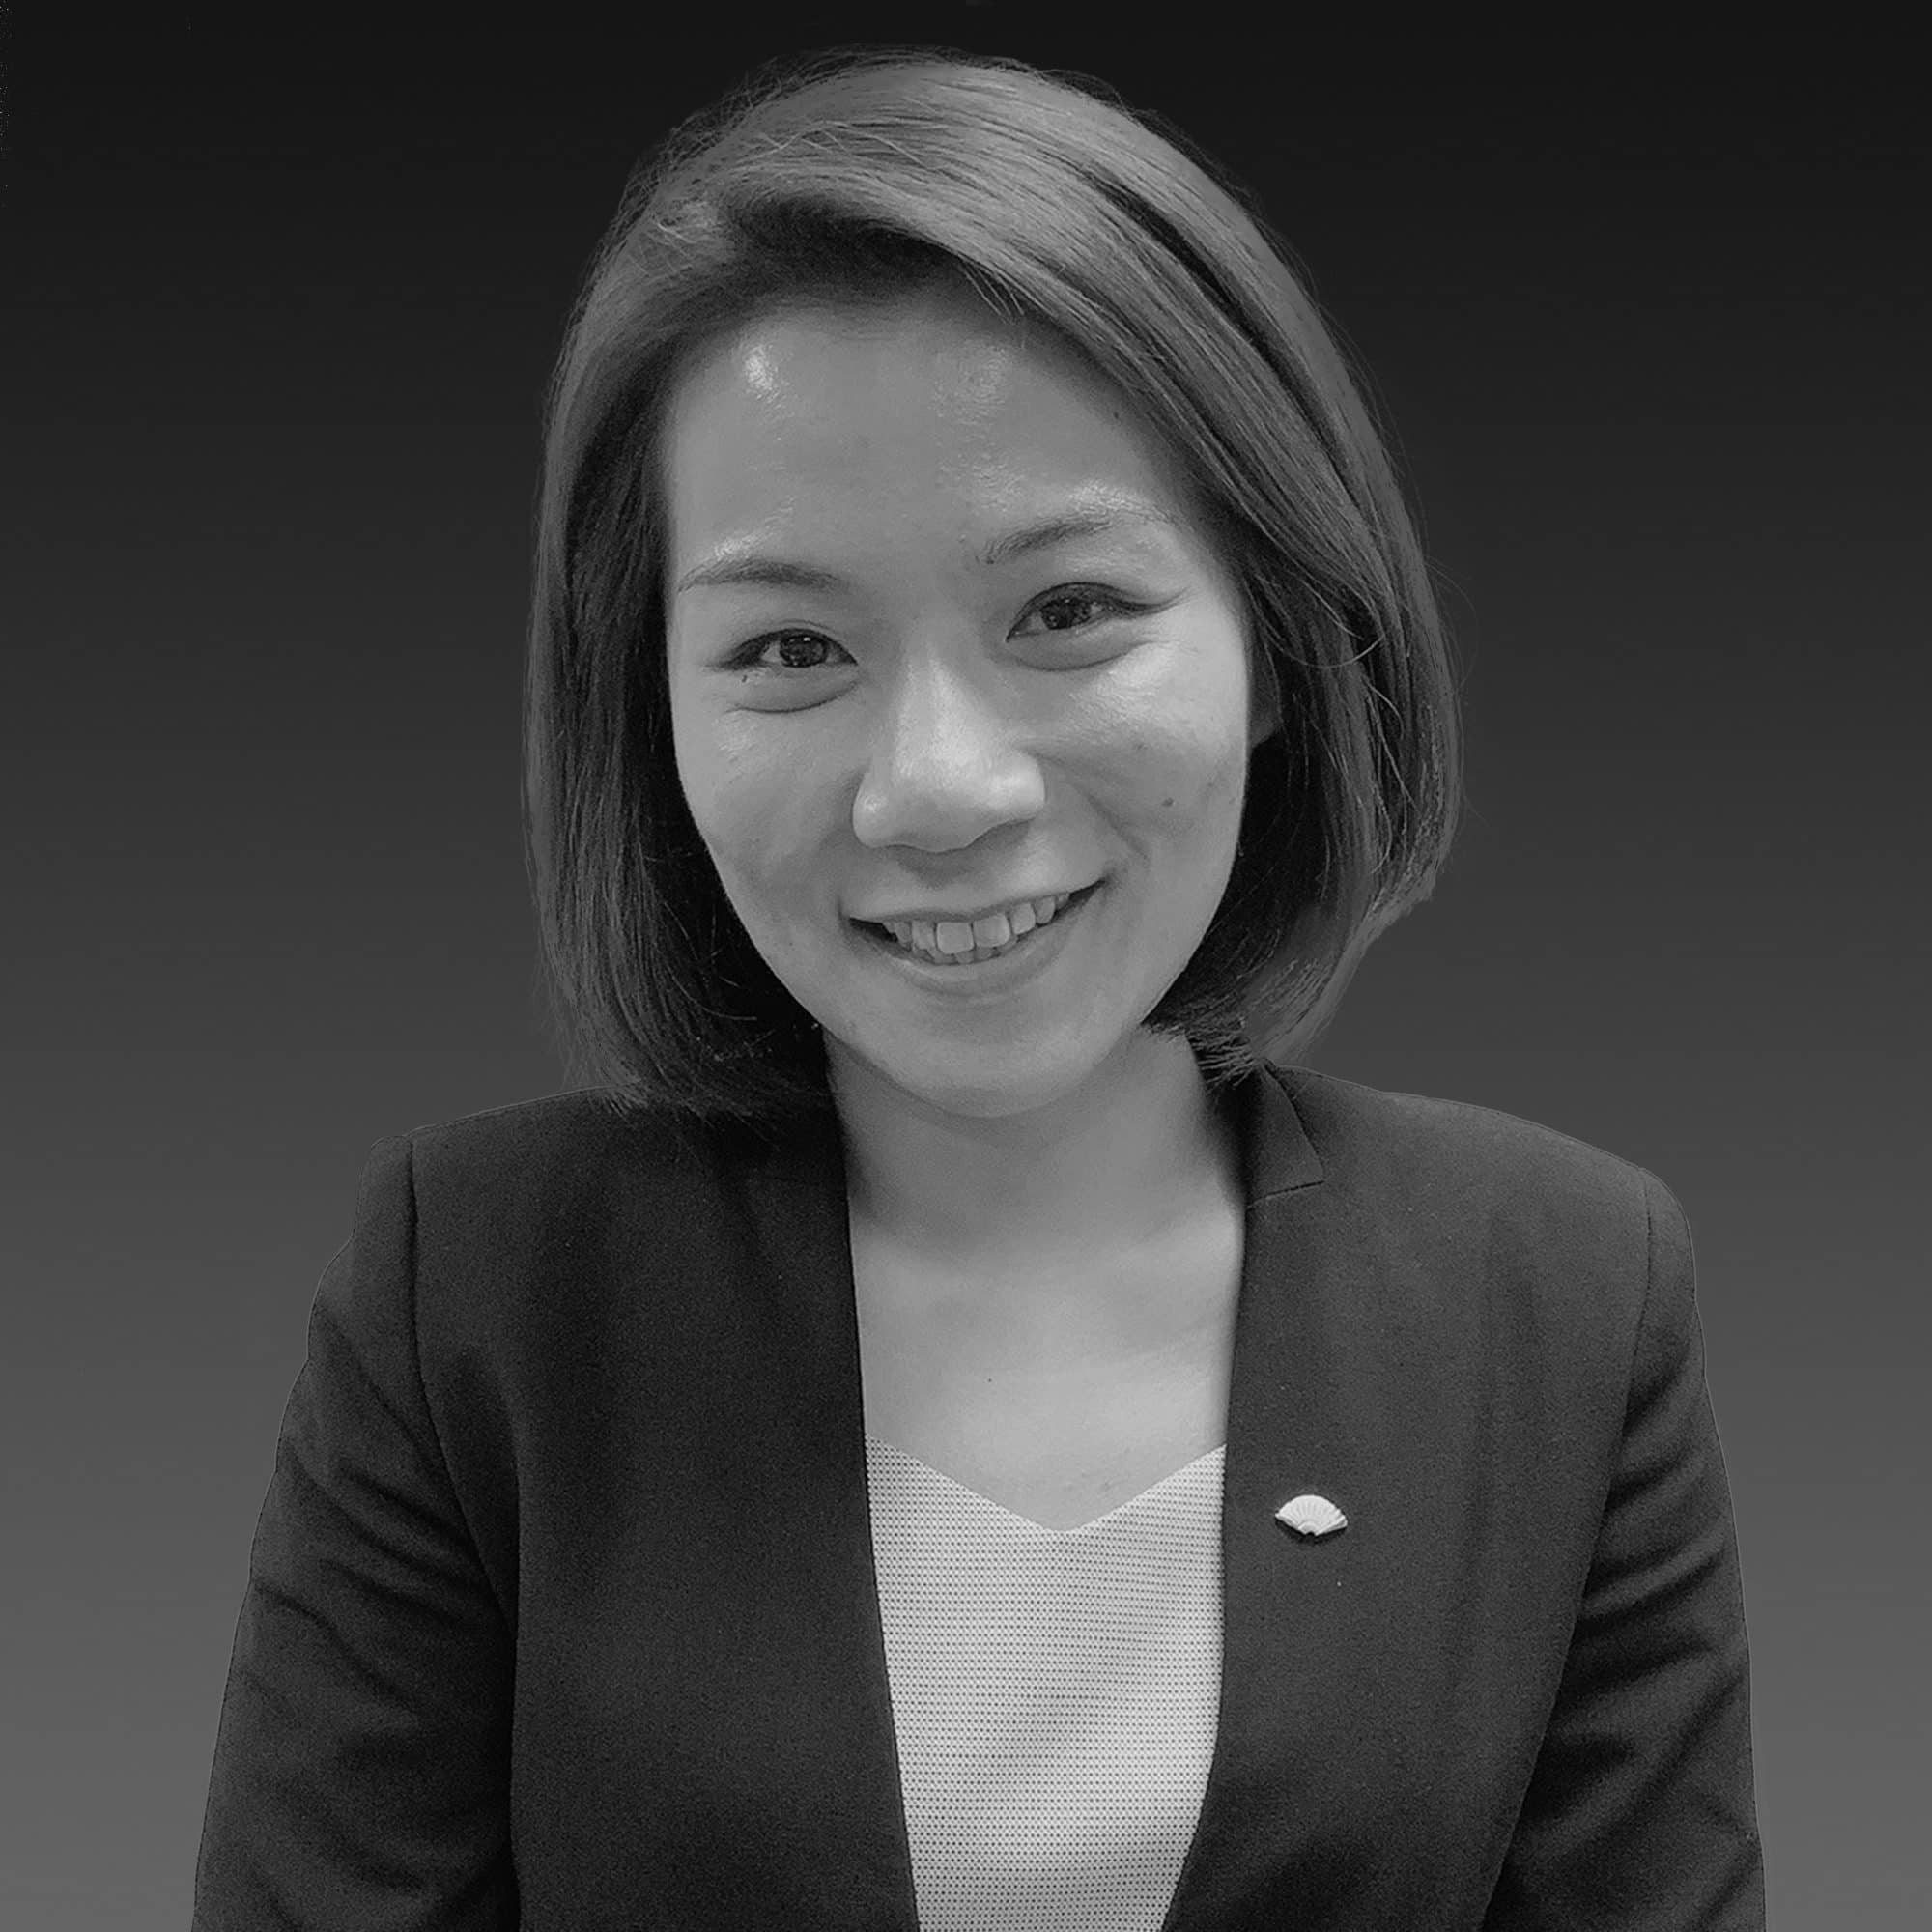 Jean Ho, Director of Communications